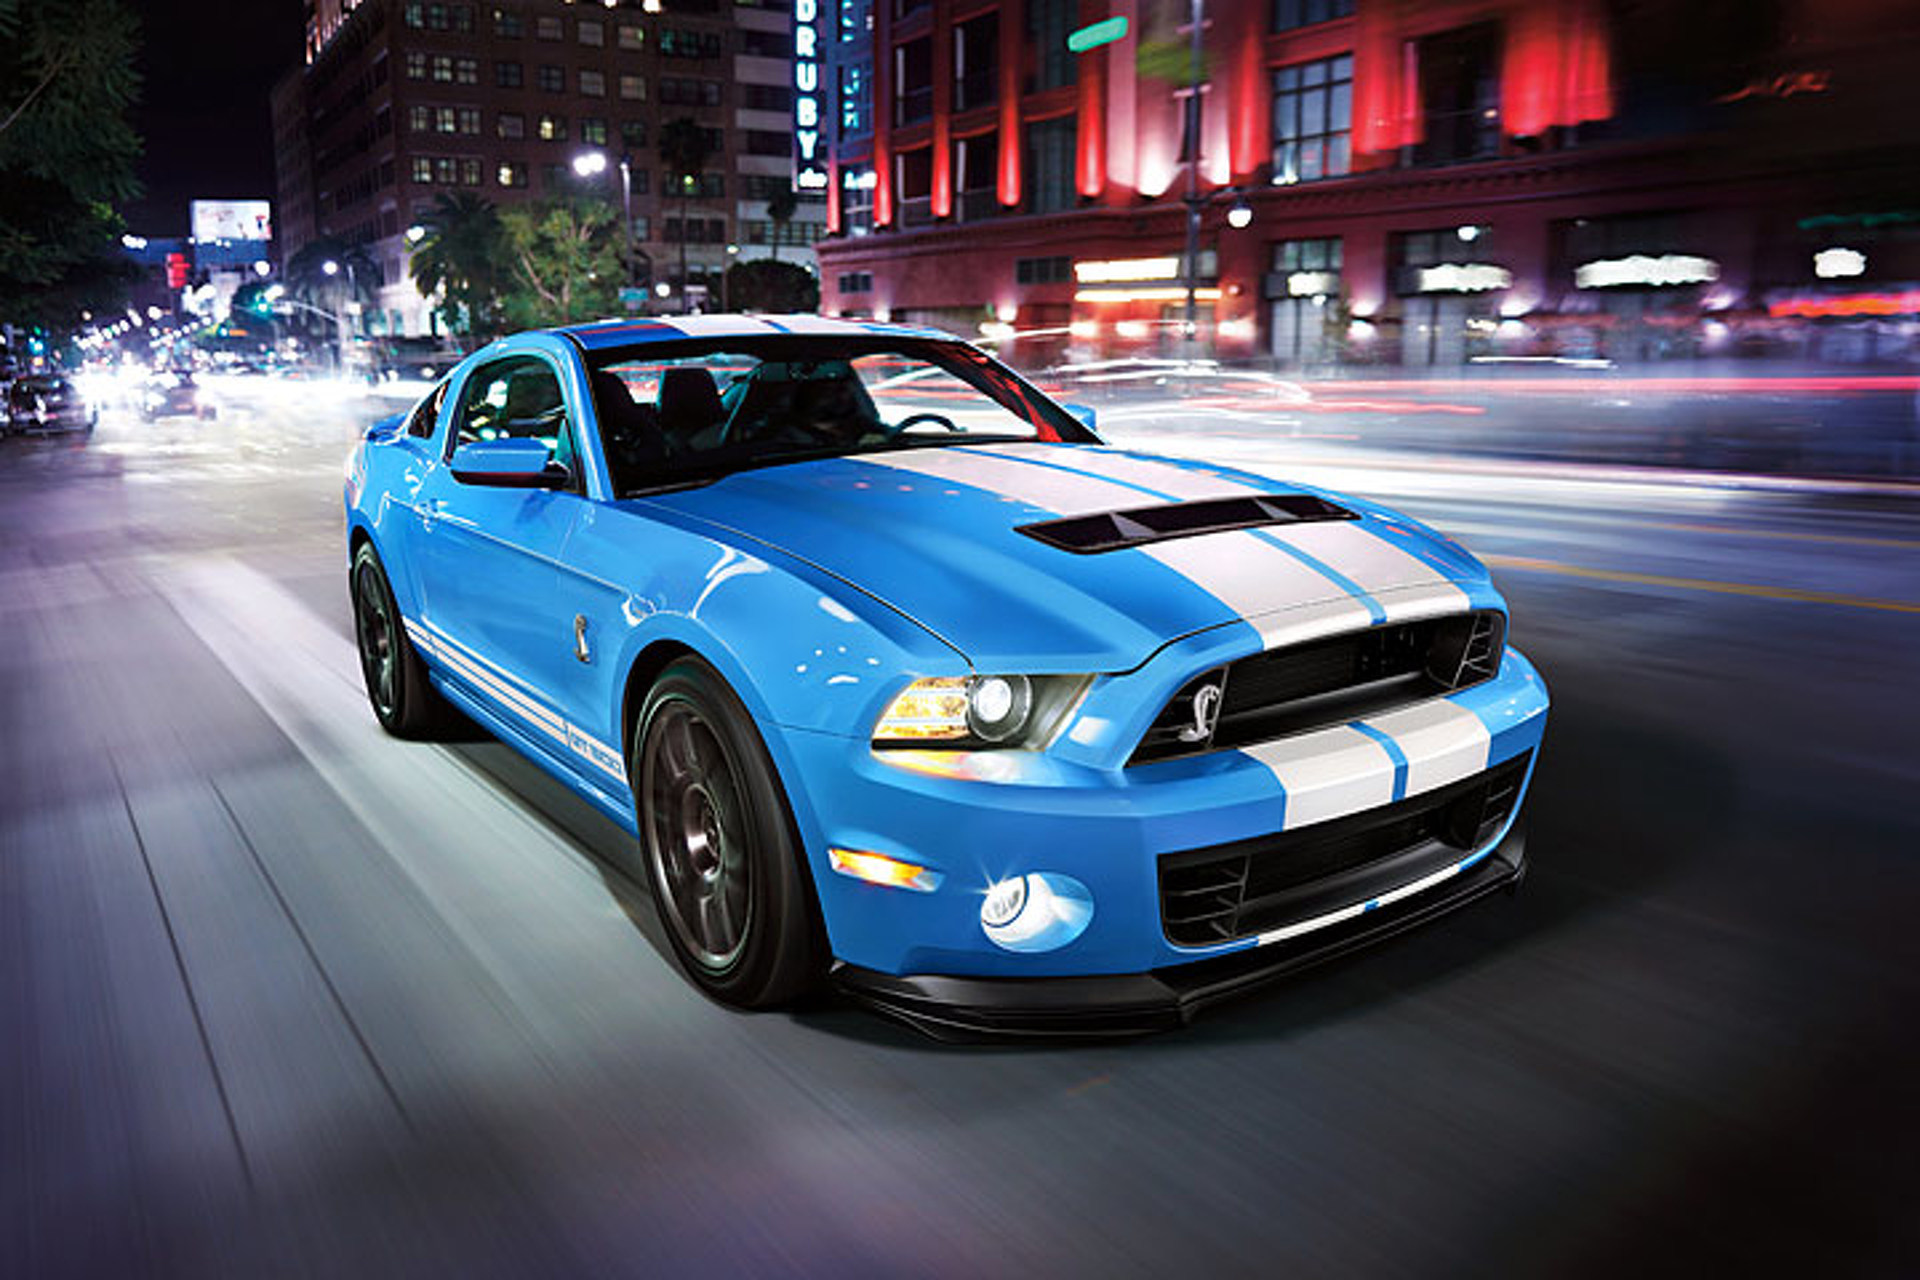 Ford shelby gt500 news and reviews motor1 com